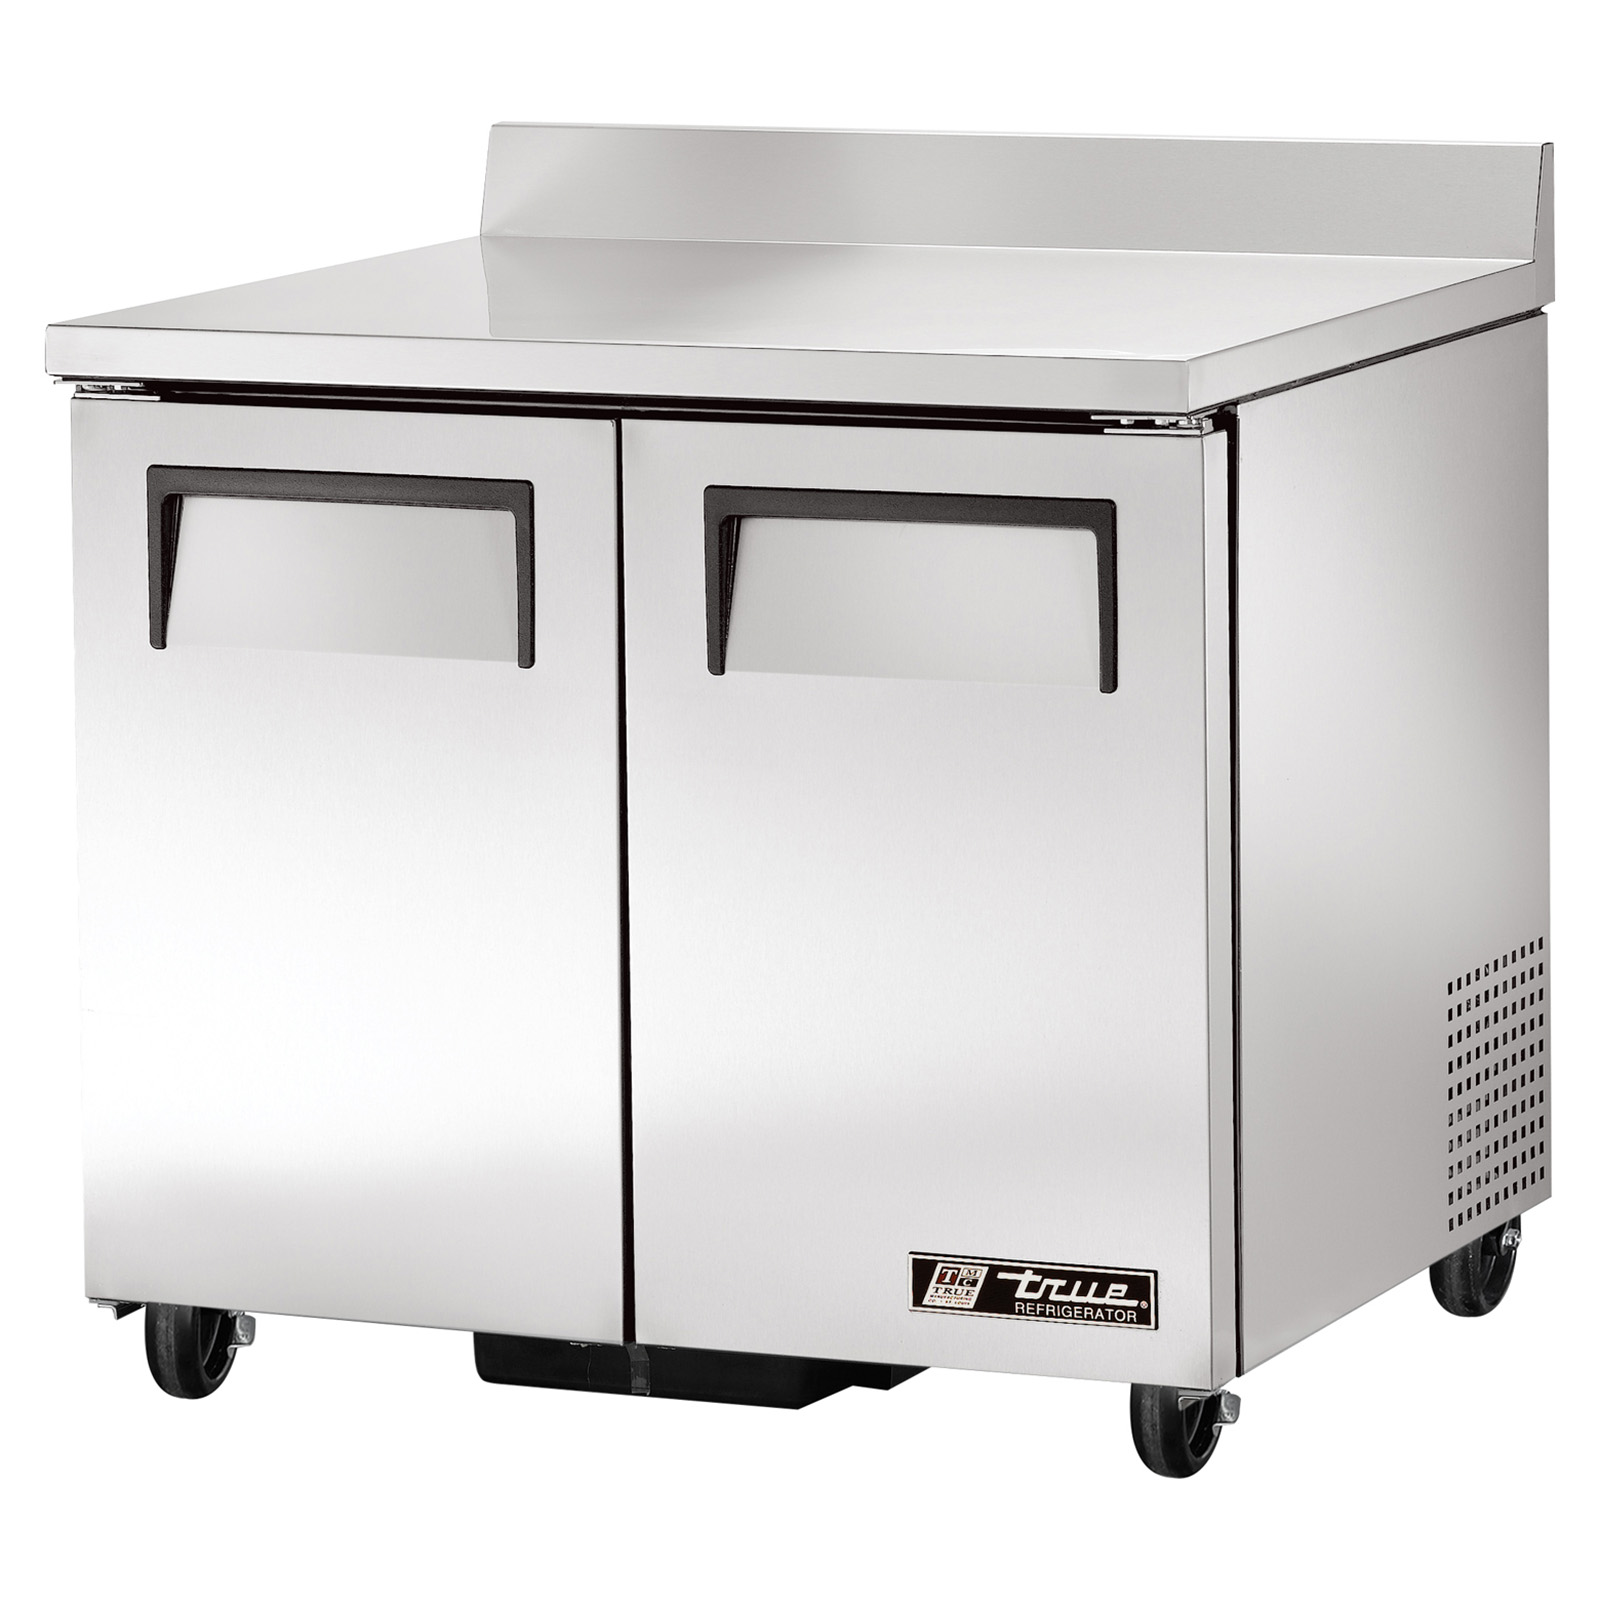 TWT-36 True - Work Top Refrigerator two-section